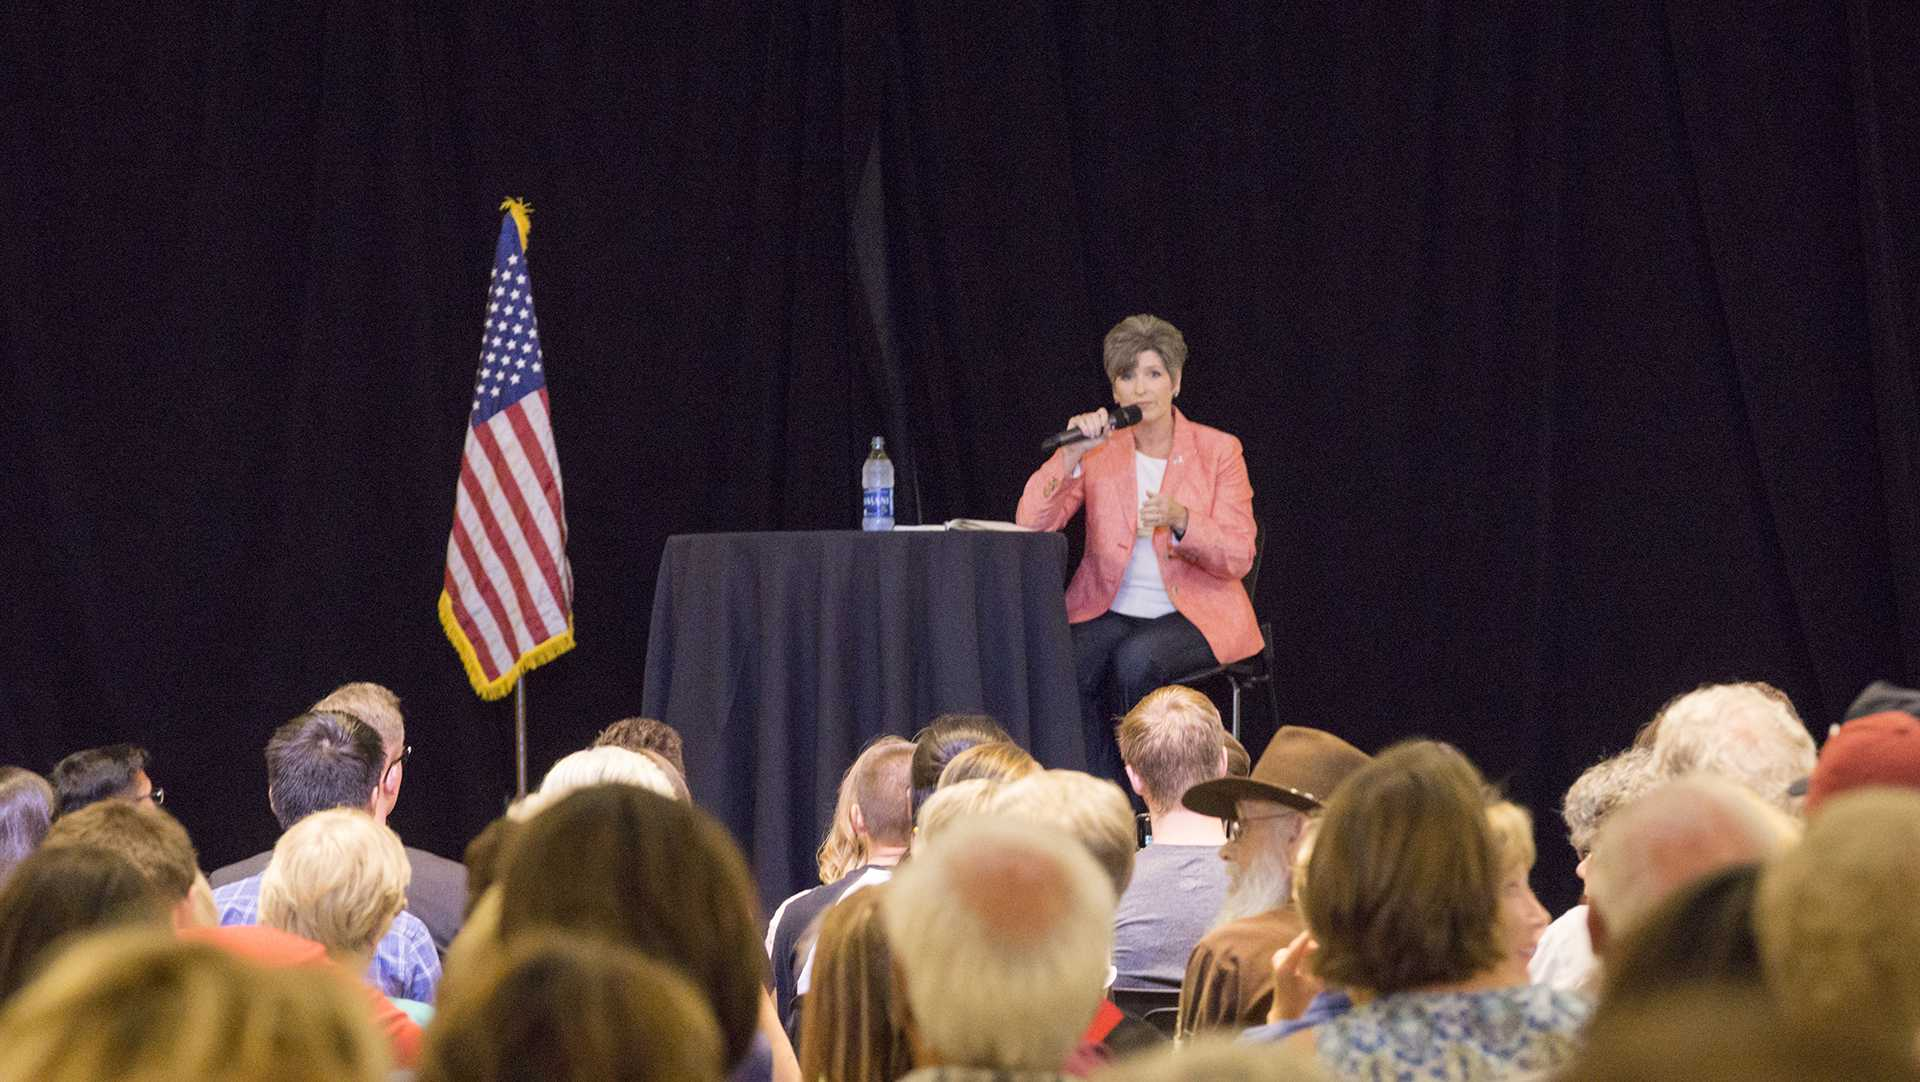 Sen. Joni Ernst, R-Iowa, answers questions at a Town Hall meeting in the Iowa Memorial Union on Friday, Sept. 22, 2017. The crowd was filled with energetic and concerned voters from all political affiliations.  (James Year/The Daily Iowan)